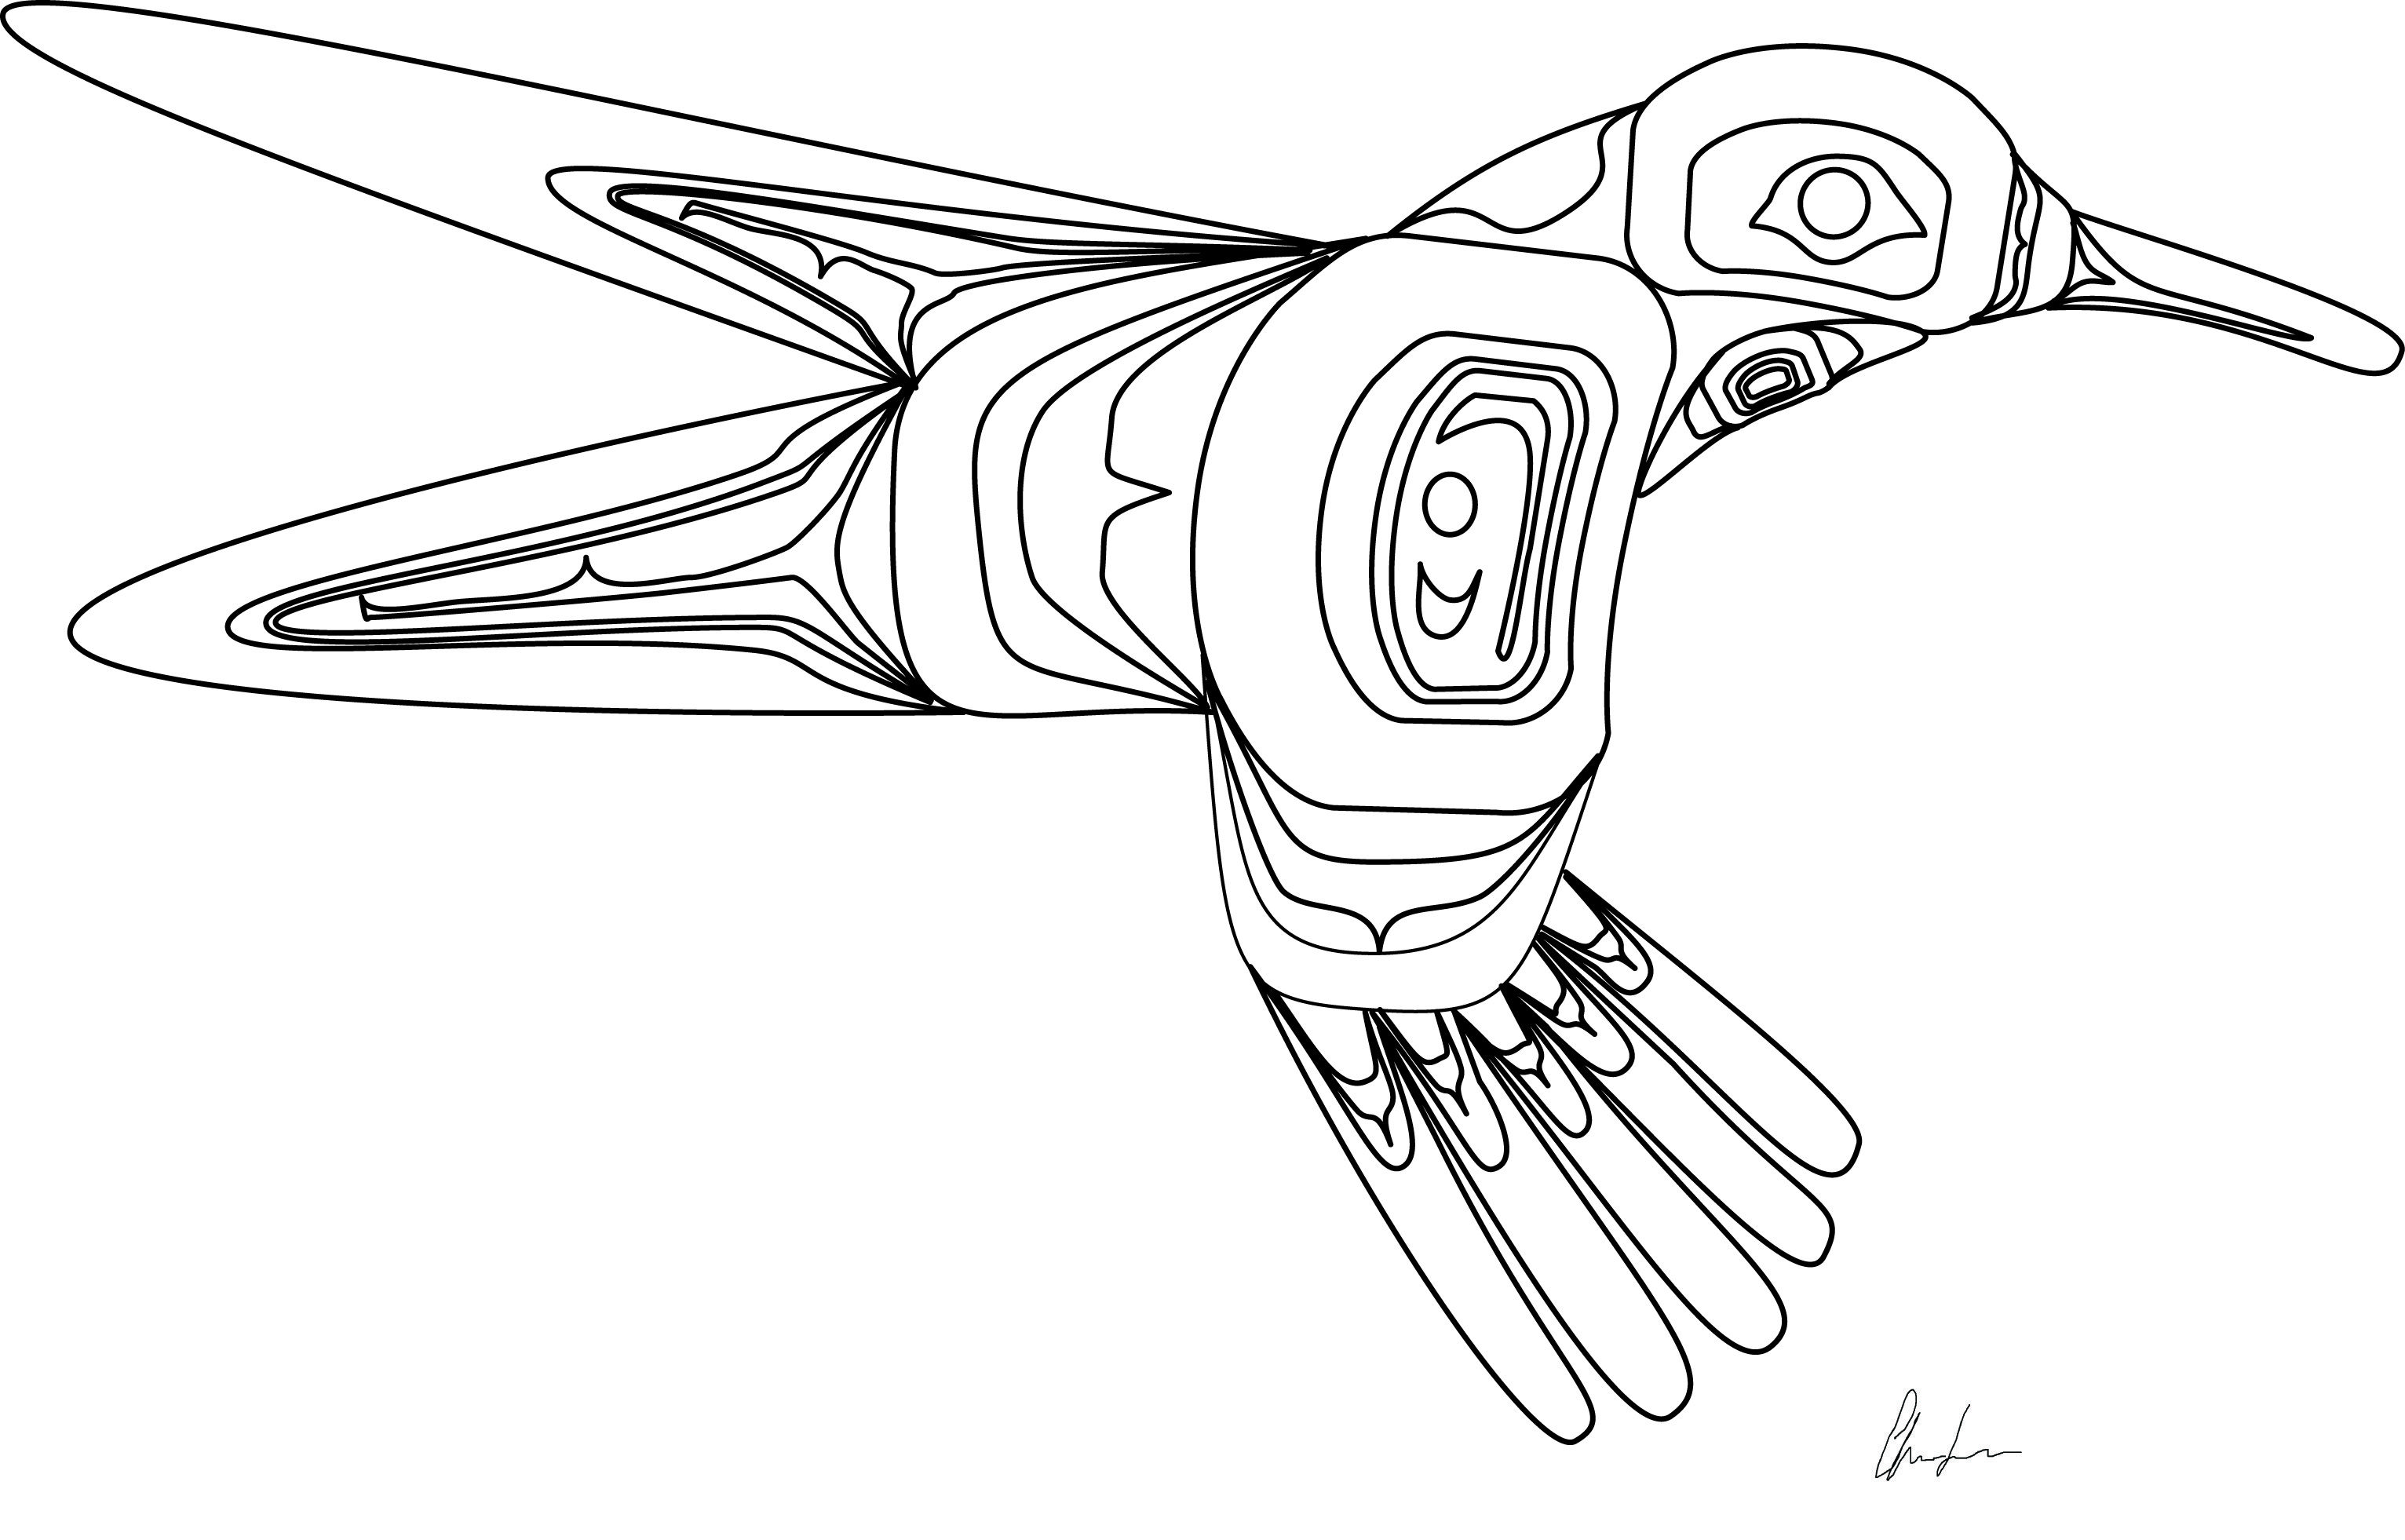 Hummingbird coloring book design. Northwest Coast First